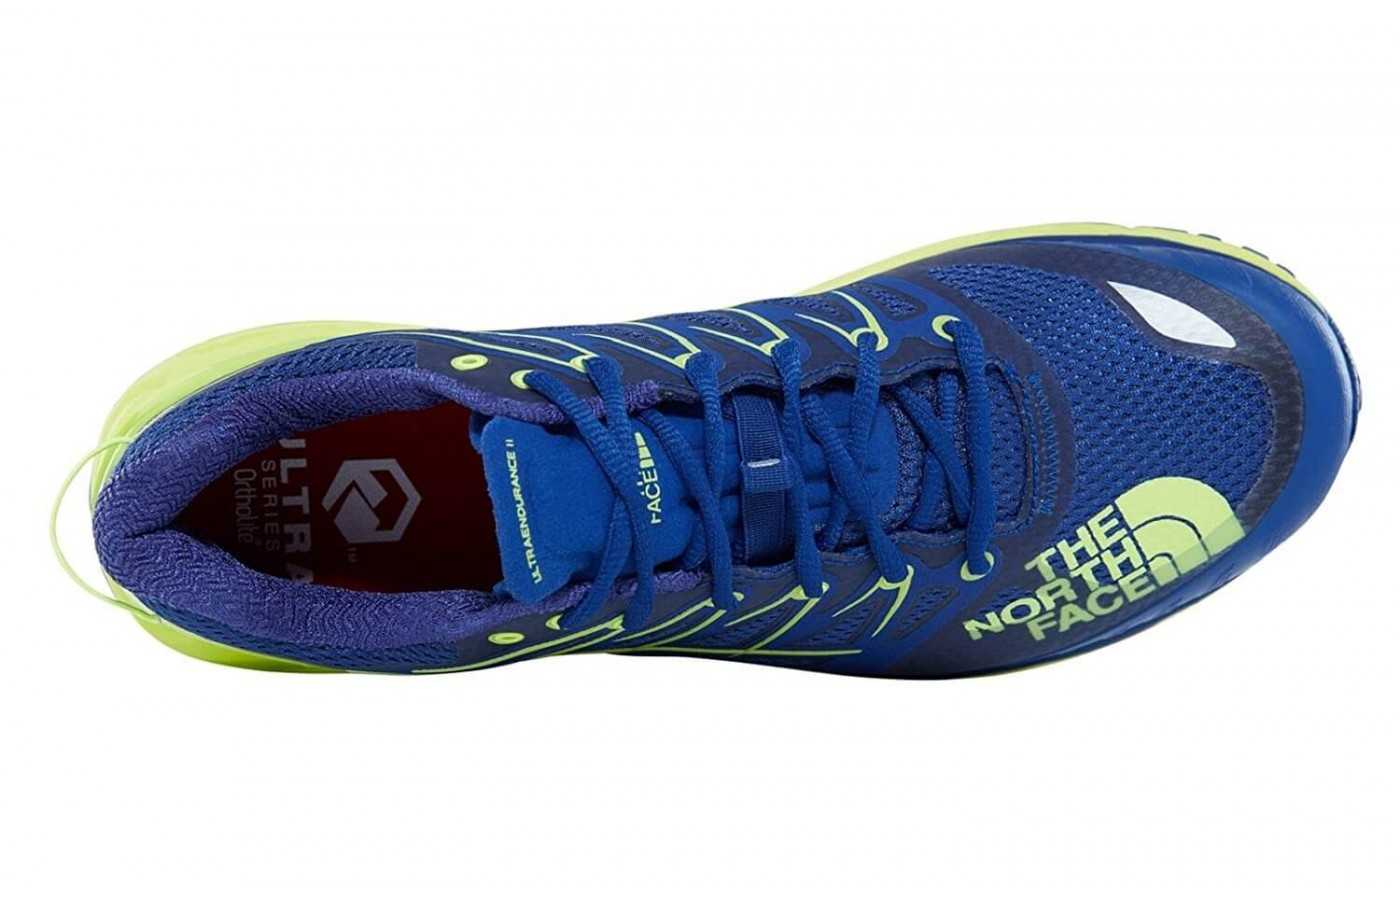 The The North Face Ultra Endurance II features a TPU toe cap for forefoot protection